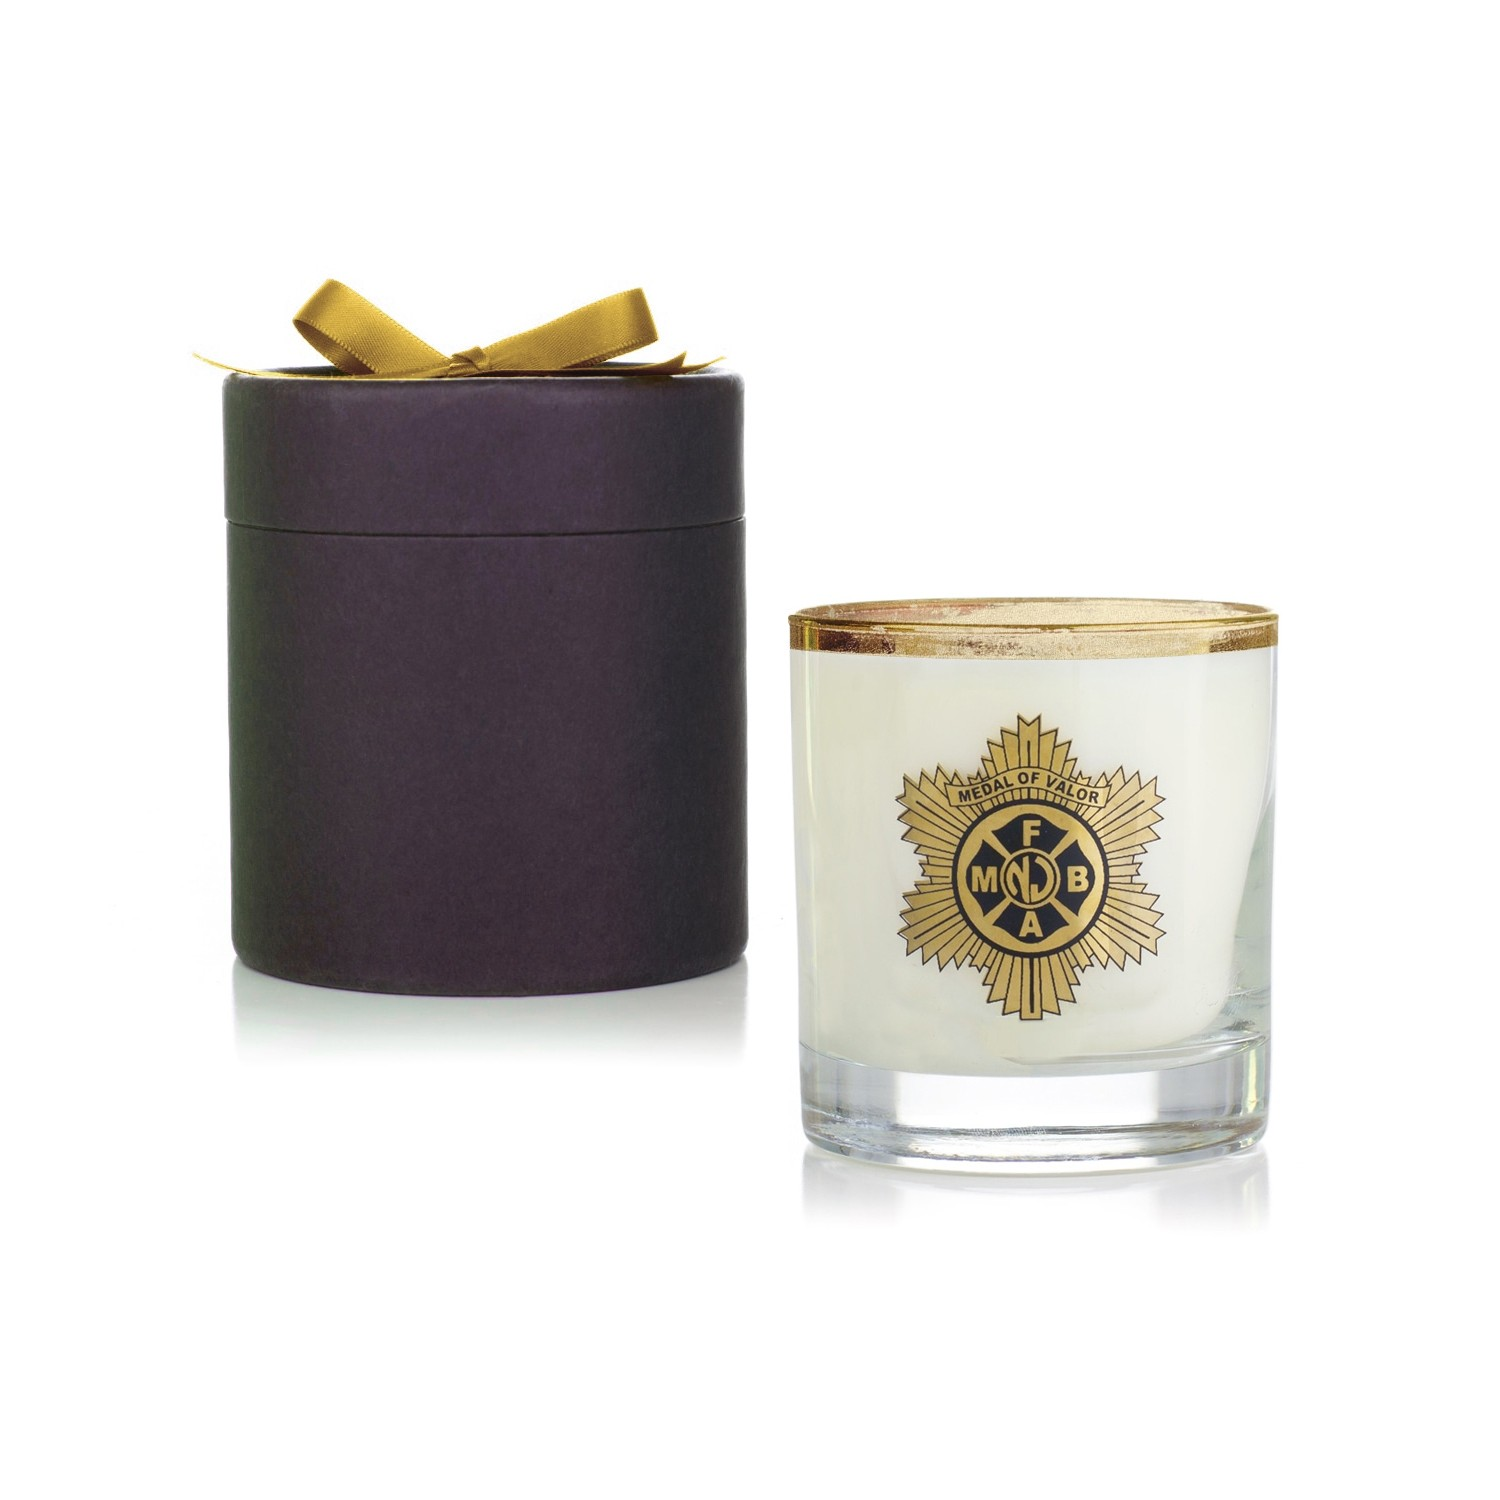 11 Oz Gold Foil Candle in Ebony Round Gift Box - VLUE (Value)